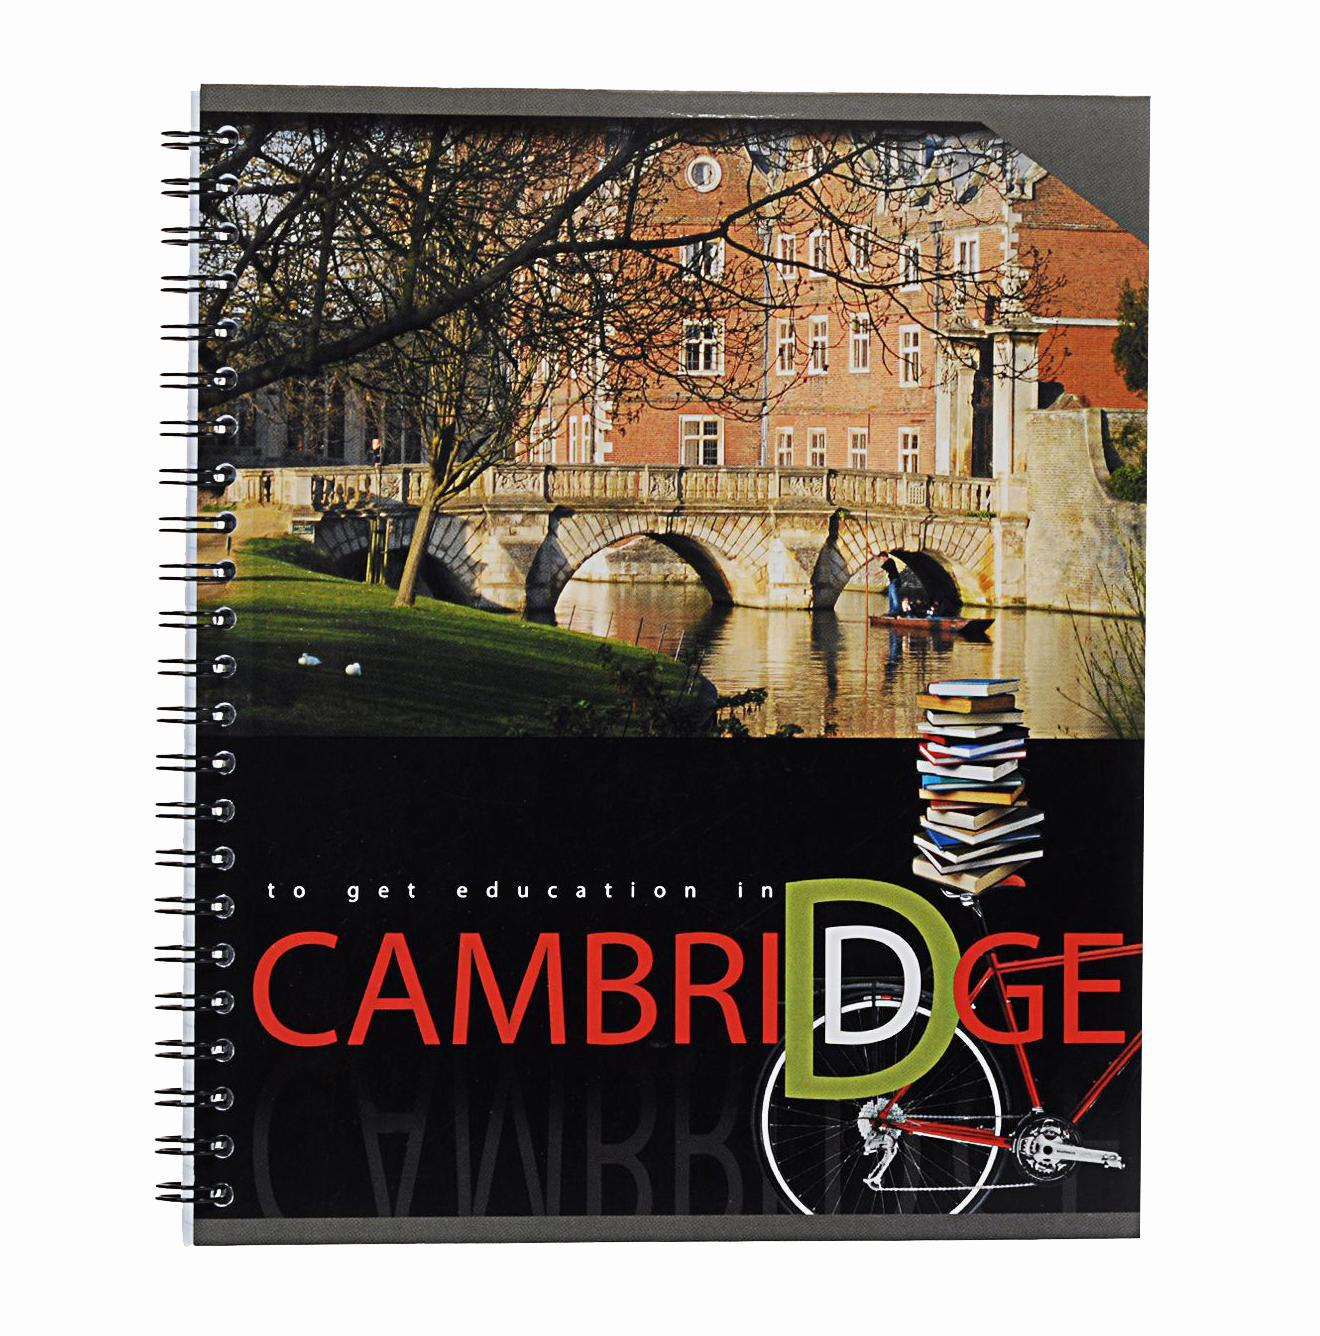 Тетрадь на спирали, 80л Cambridge,УФ-лак,мост72523WDтетрадь на спирали,80л Cambridge, УФ-лак, мост